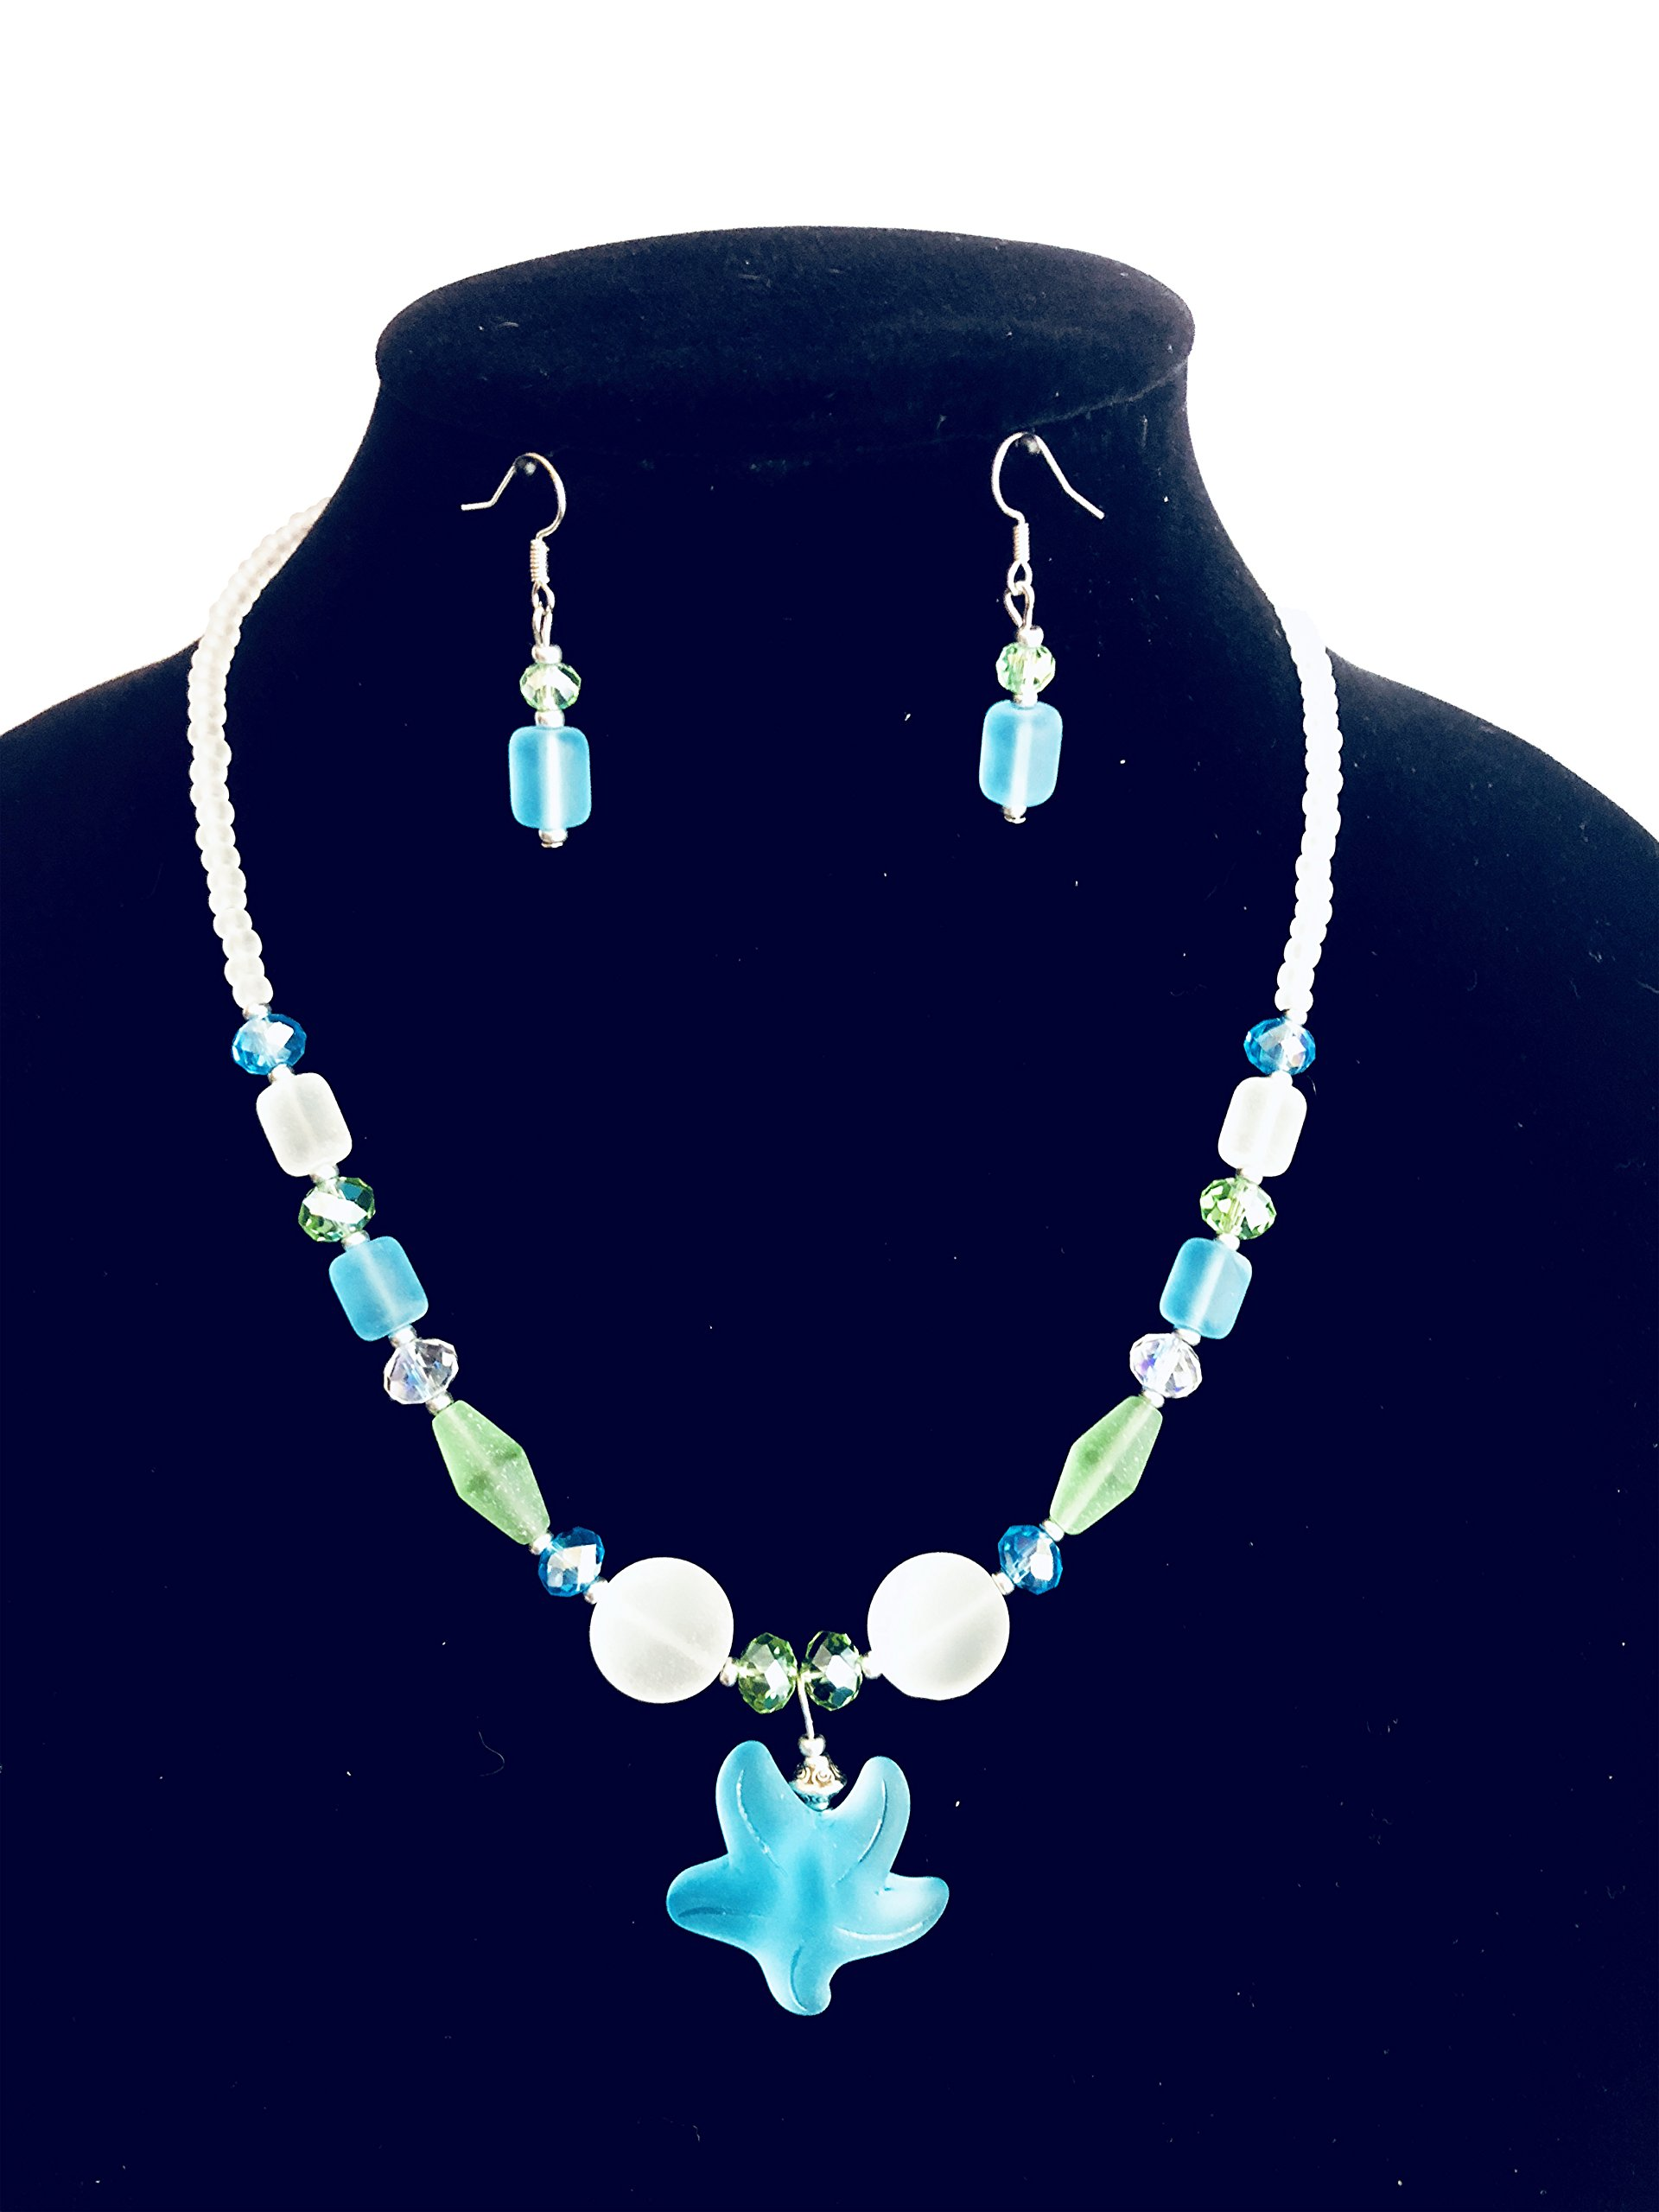 Scoby Hill Handcrafted Sea Glass Necklace & Earring Set (Aqua Marine Blue & Seafoam Green glass with Starfish Pendant)